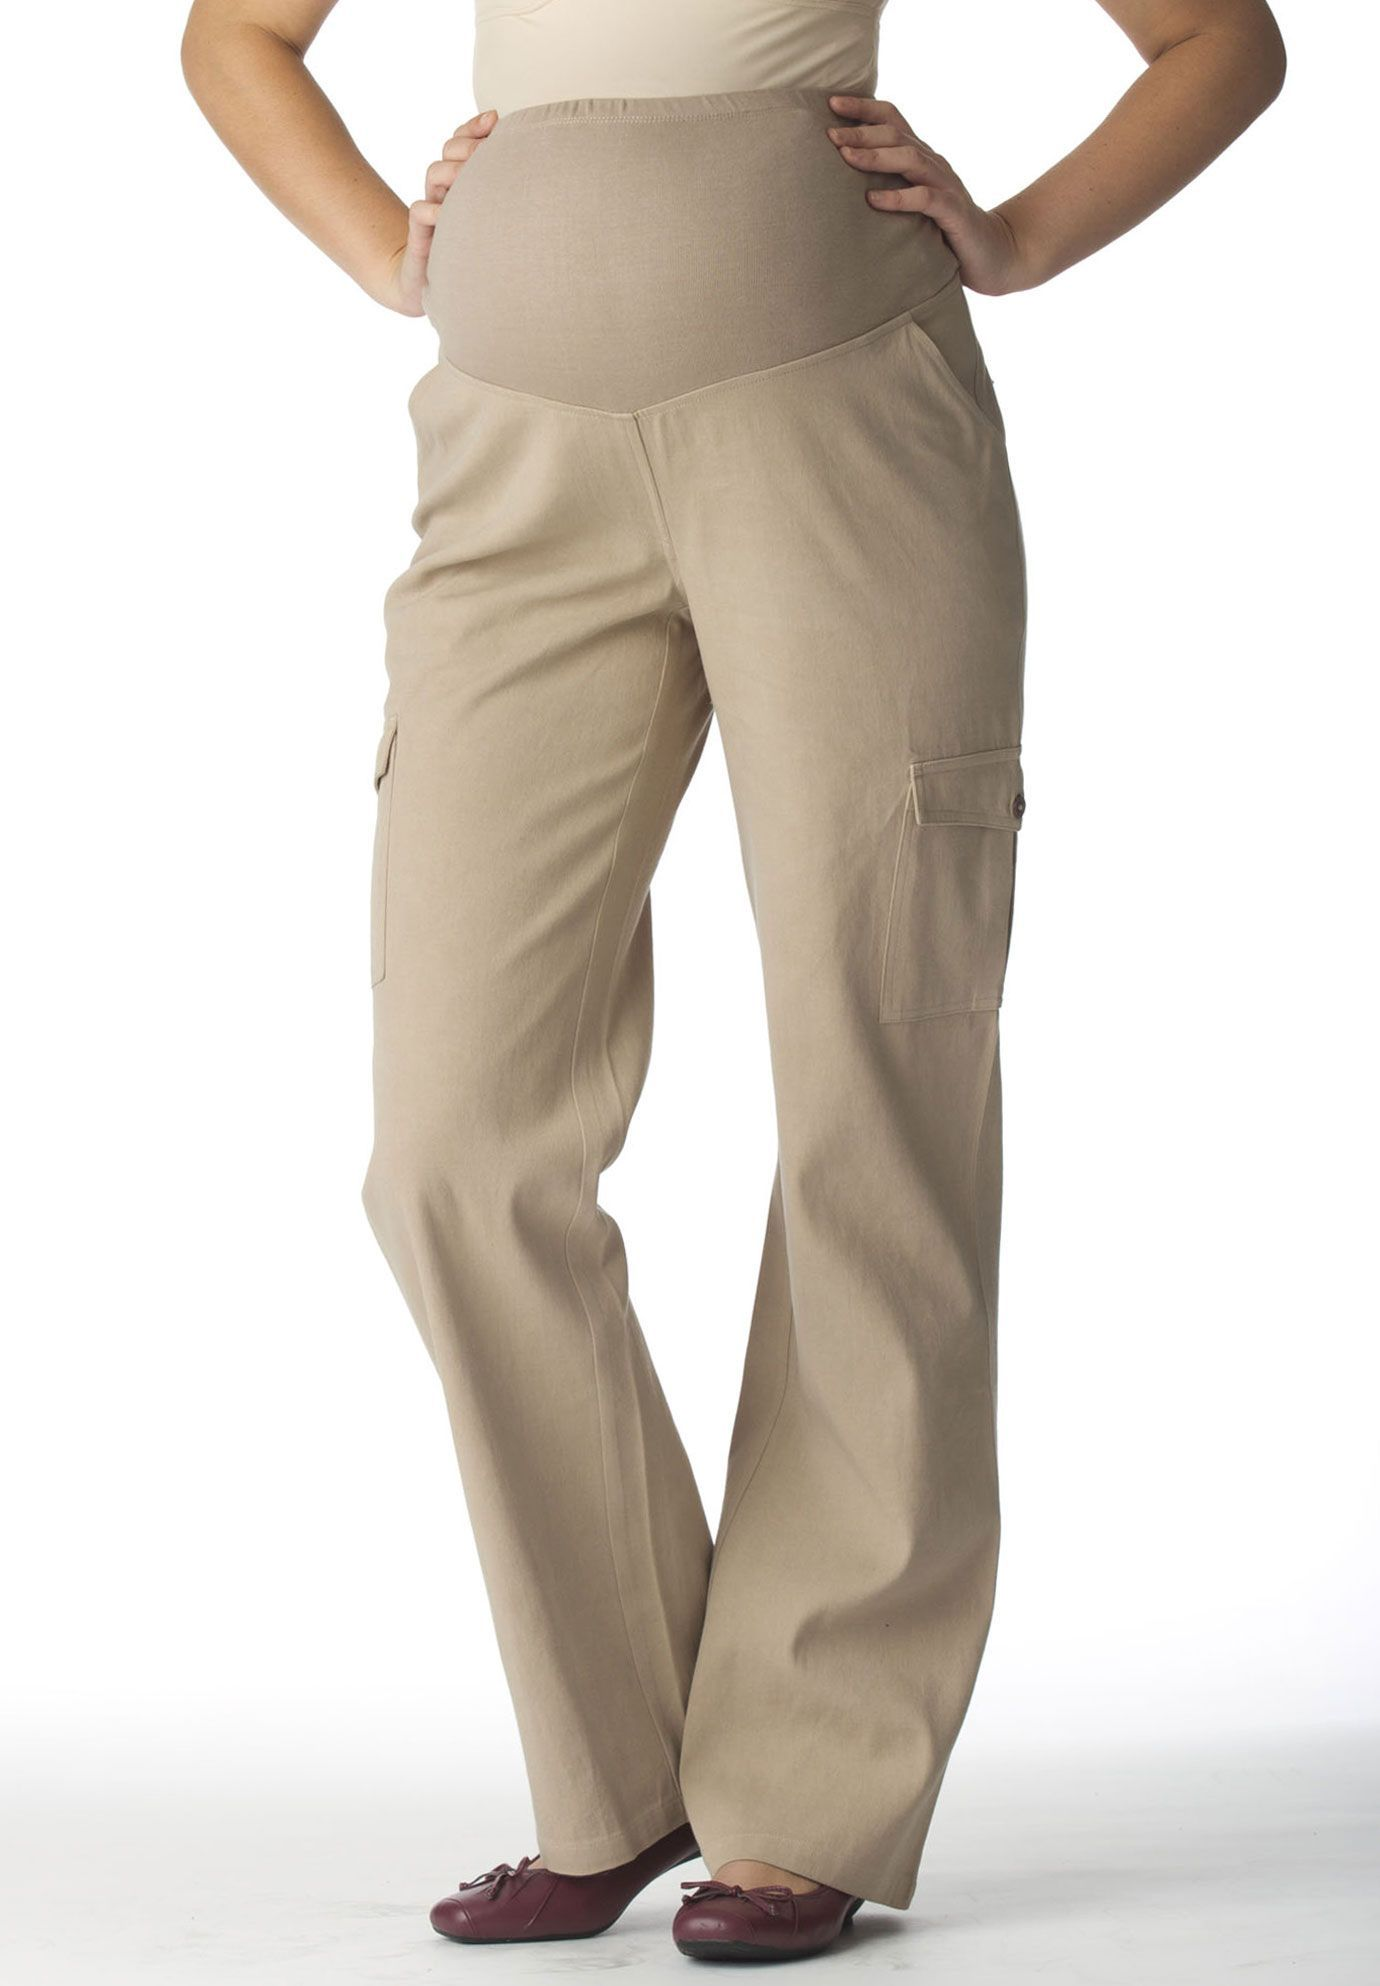 2cd1c8ff06dc1 Woman Within Plus Size #Maternity Cargo Pants.The style of the season,  restyled for full-term use! Our plus size maternity cargo pants feature a  3' knit ...